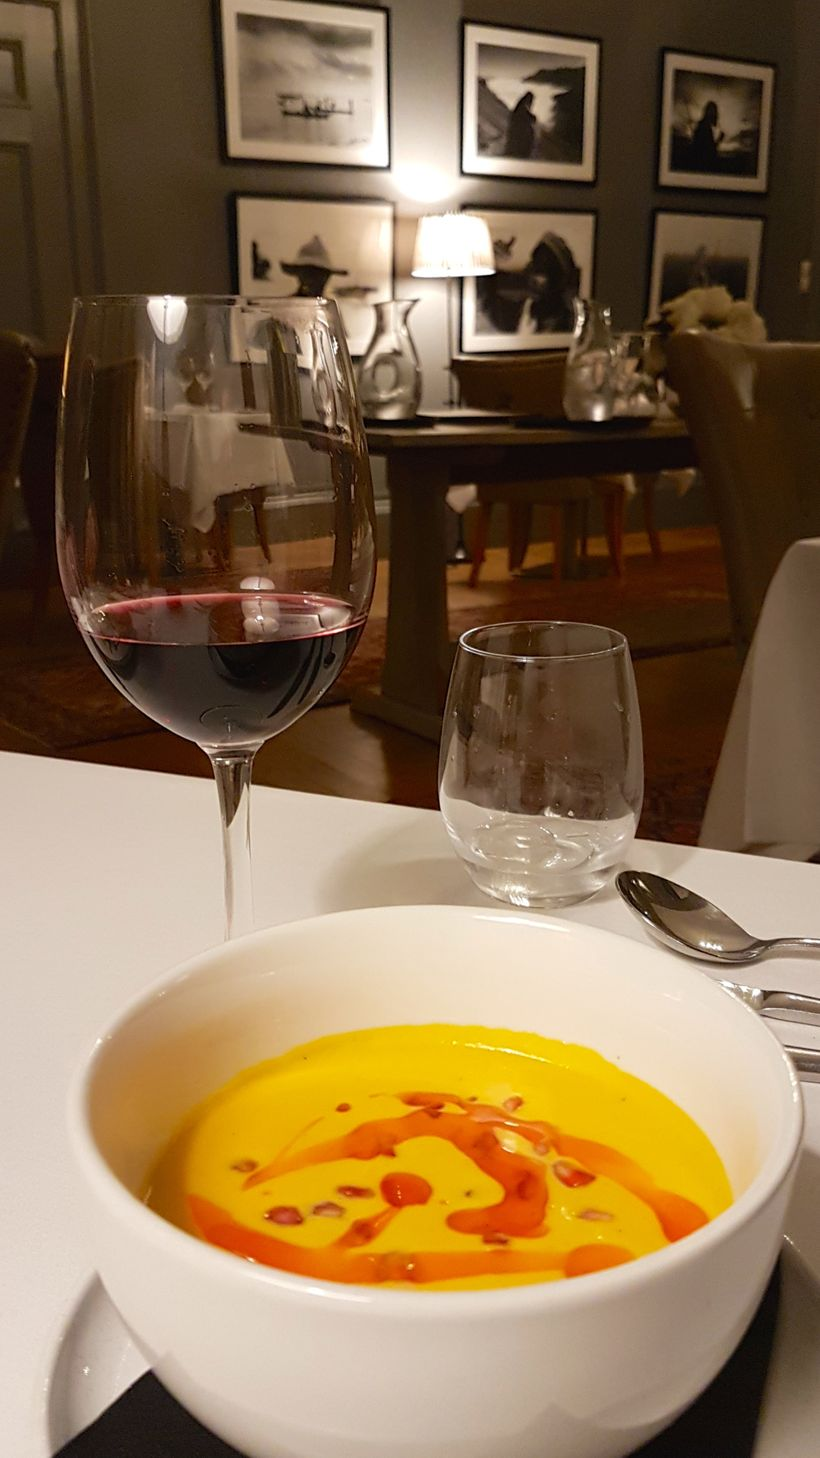 A glass of malbec and wintery bowl of butternut squash velouté, served by Kendal Heraty—one of the wonderful staff who call G